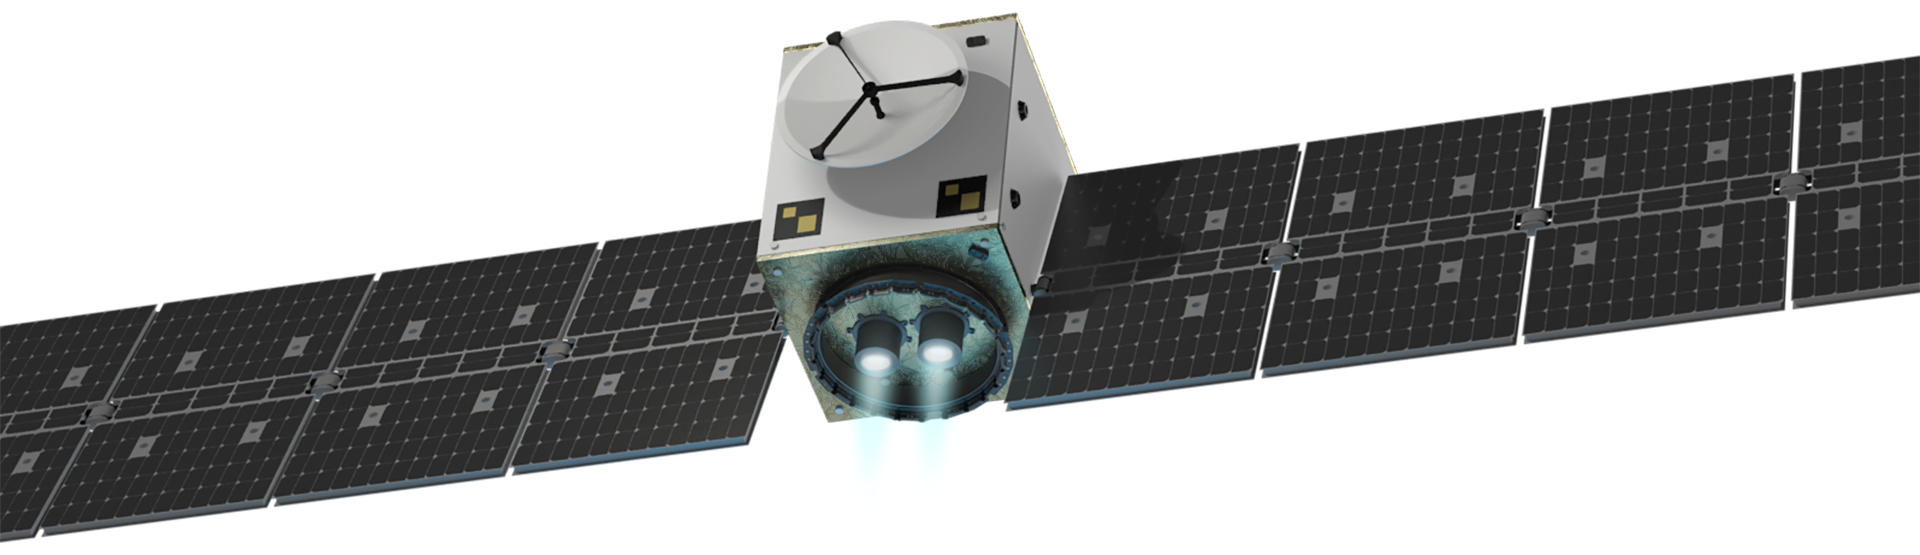 The MULTIPURPOSE ELECTRIC SATELLITE PLATFORM ESKIMO shown at an isometric view from below. The white cubic satellite body between the large, strechted-out solar panel wings is illuminated by the two firing ion-thrusters at the bottom, with its plumes shining in light blue.